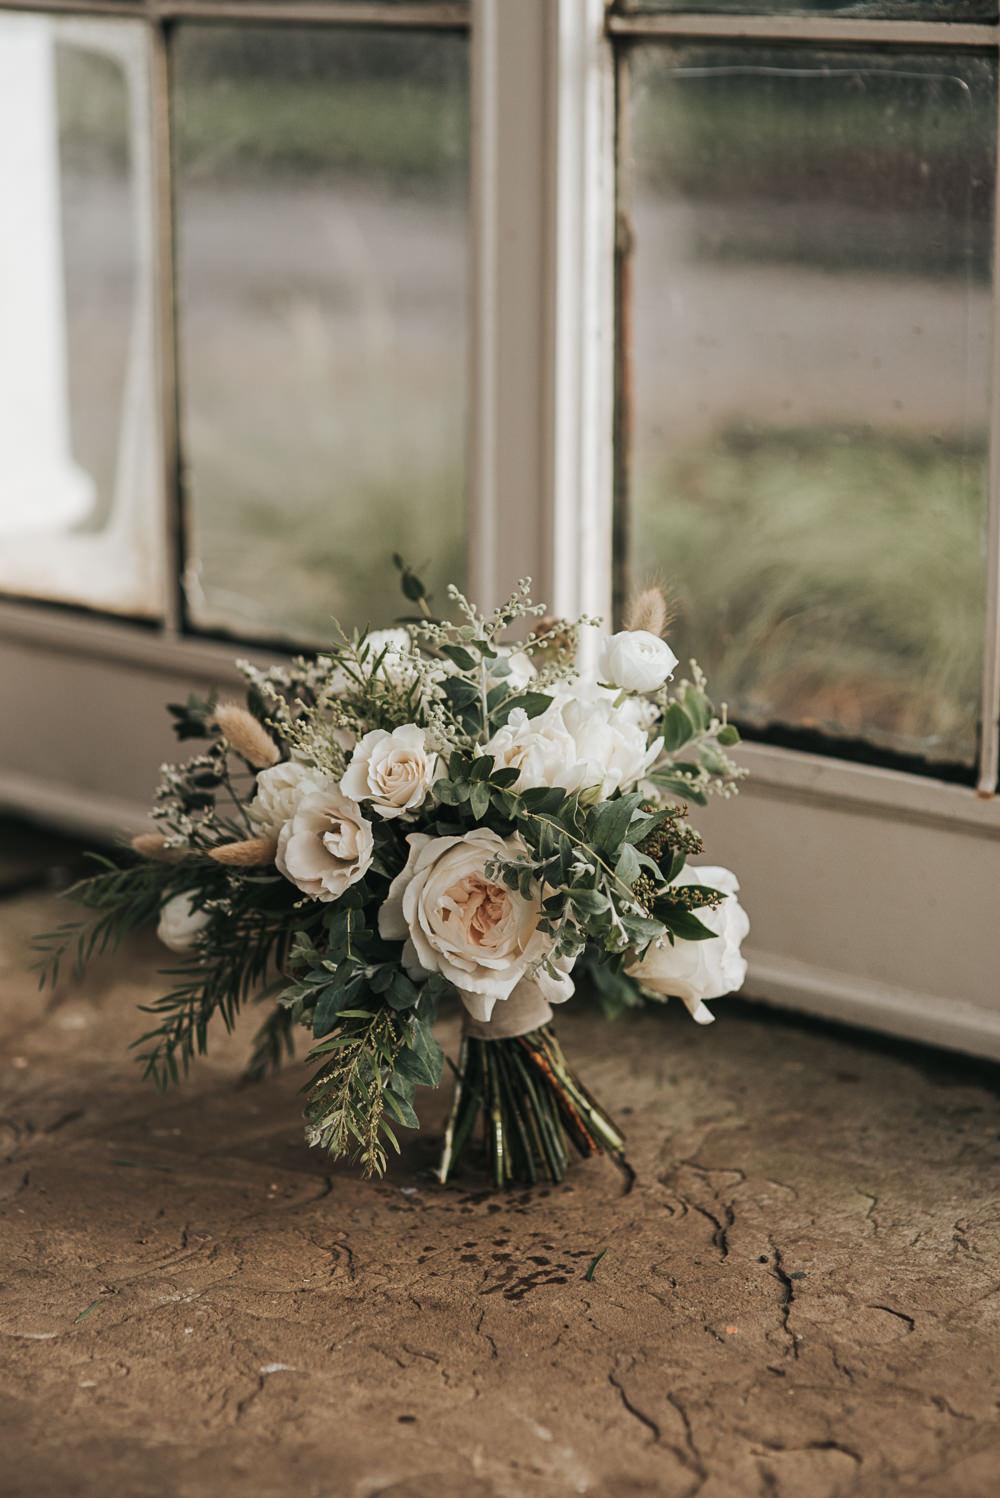 Bouquet Flowers Bride Bridal White Roses Greenery Foliage Wollaton Hall Wedding Pear and Bear Photography